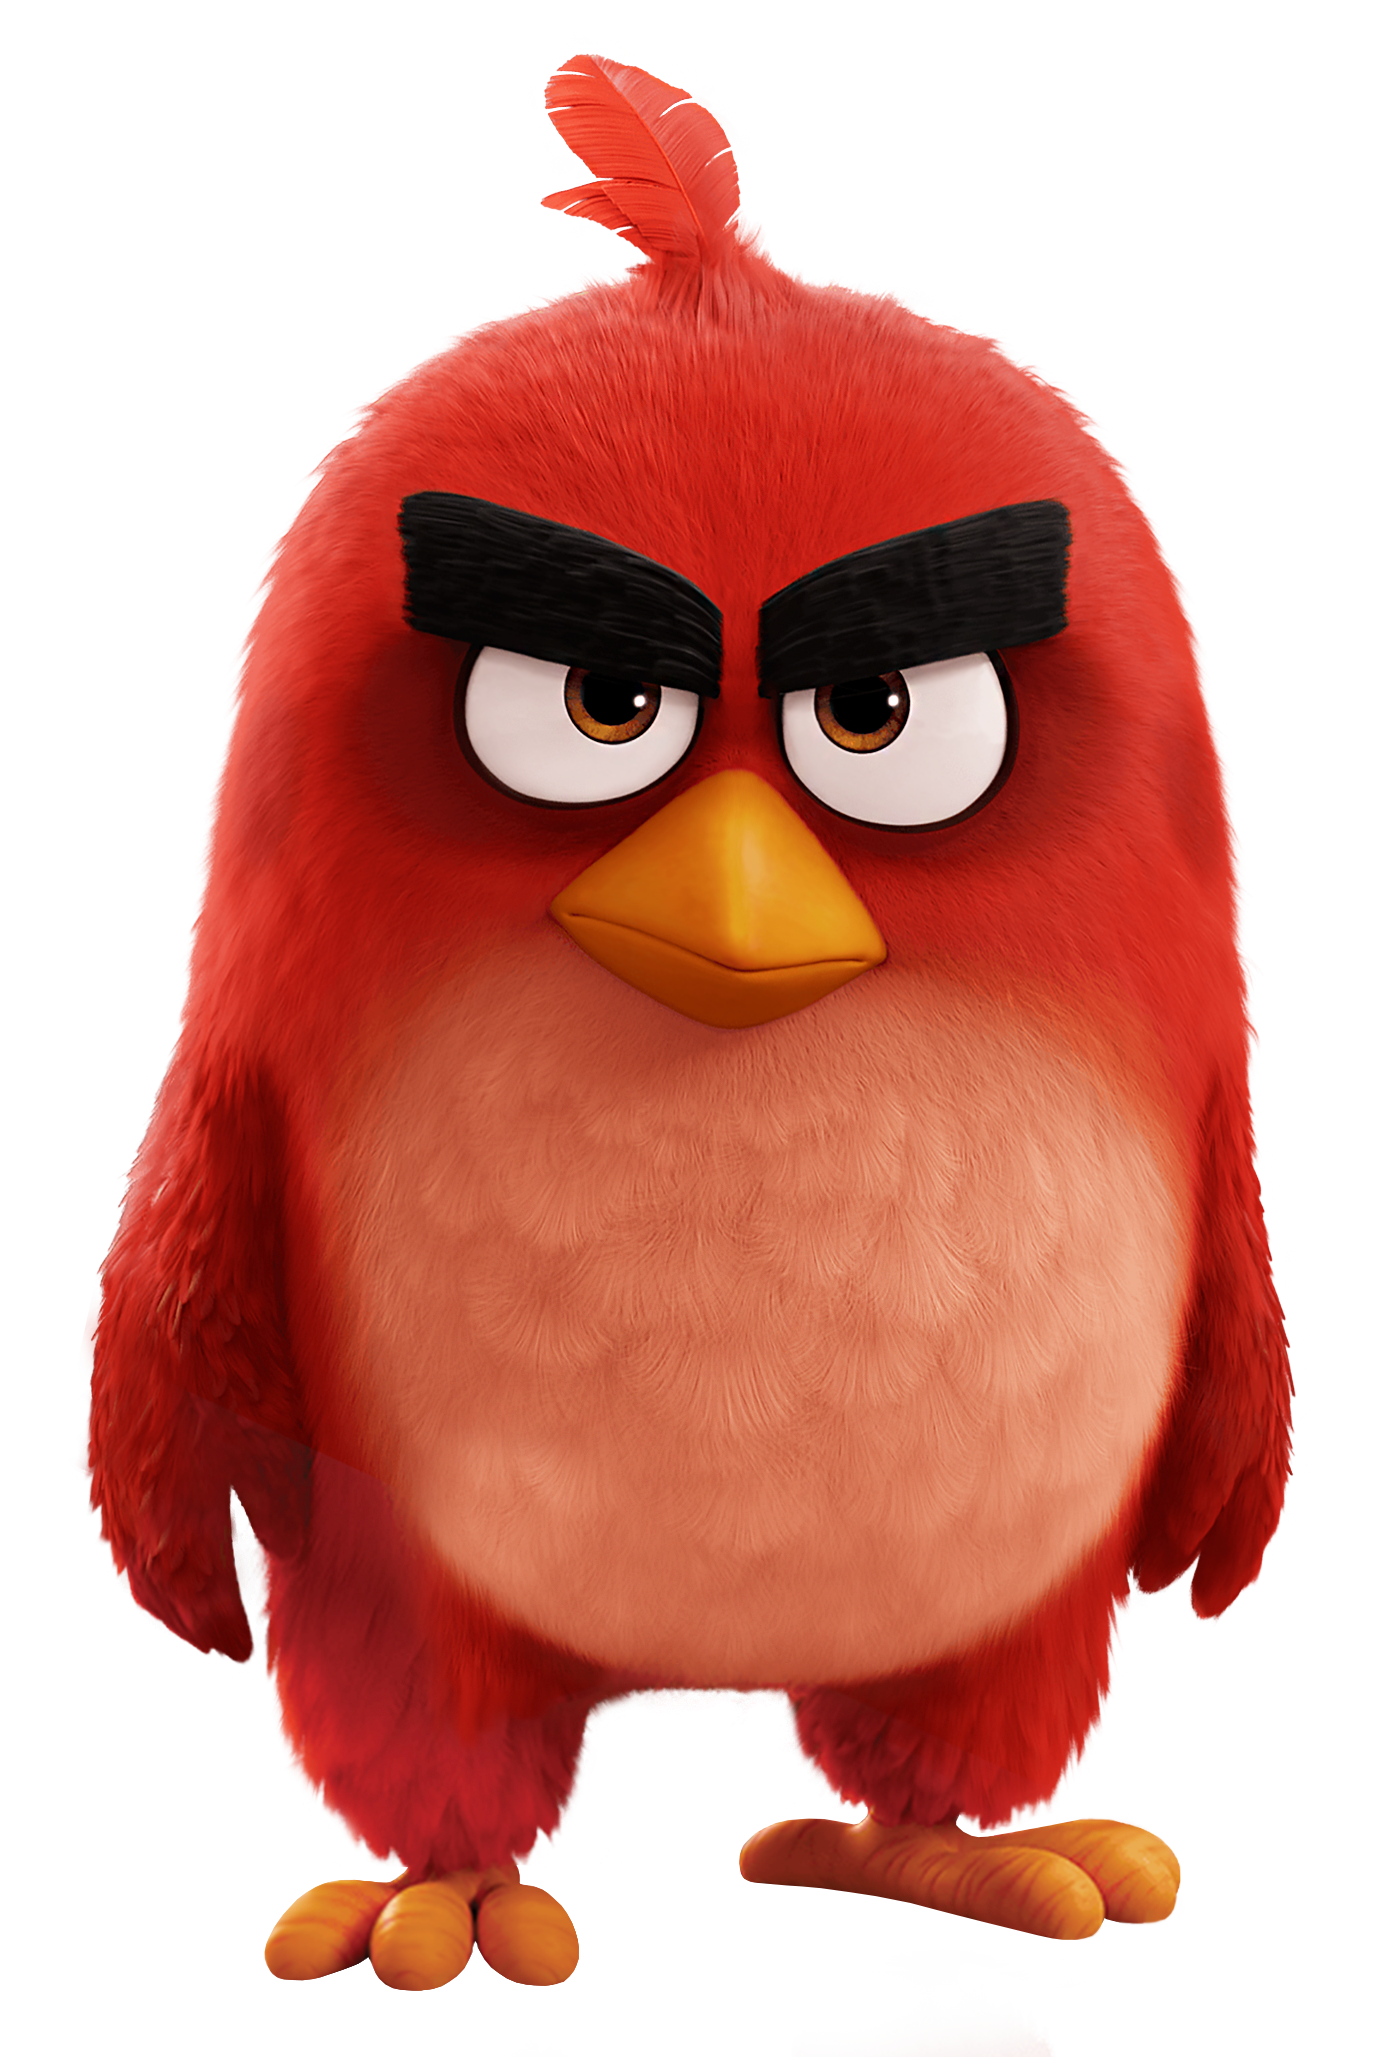 Anger Clipart Red Thing Free collection | Download and share Anger ... graphic free library